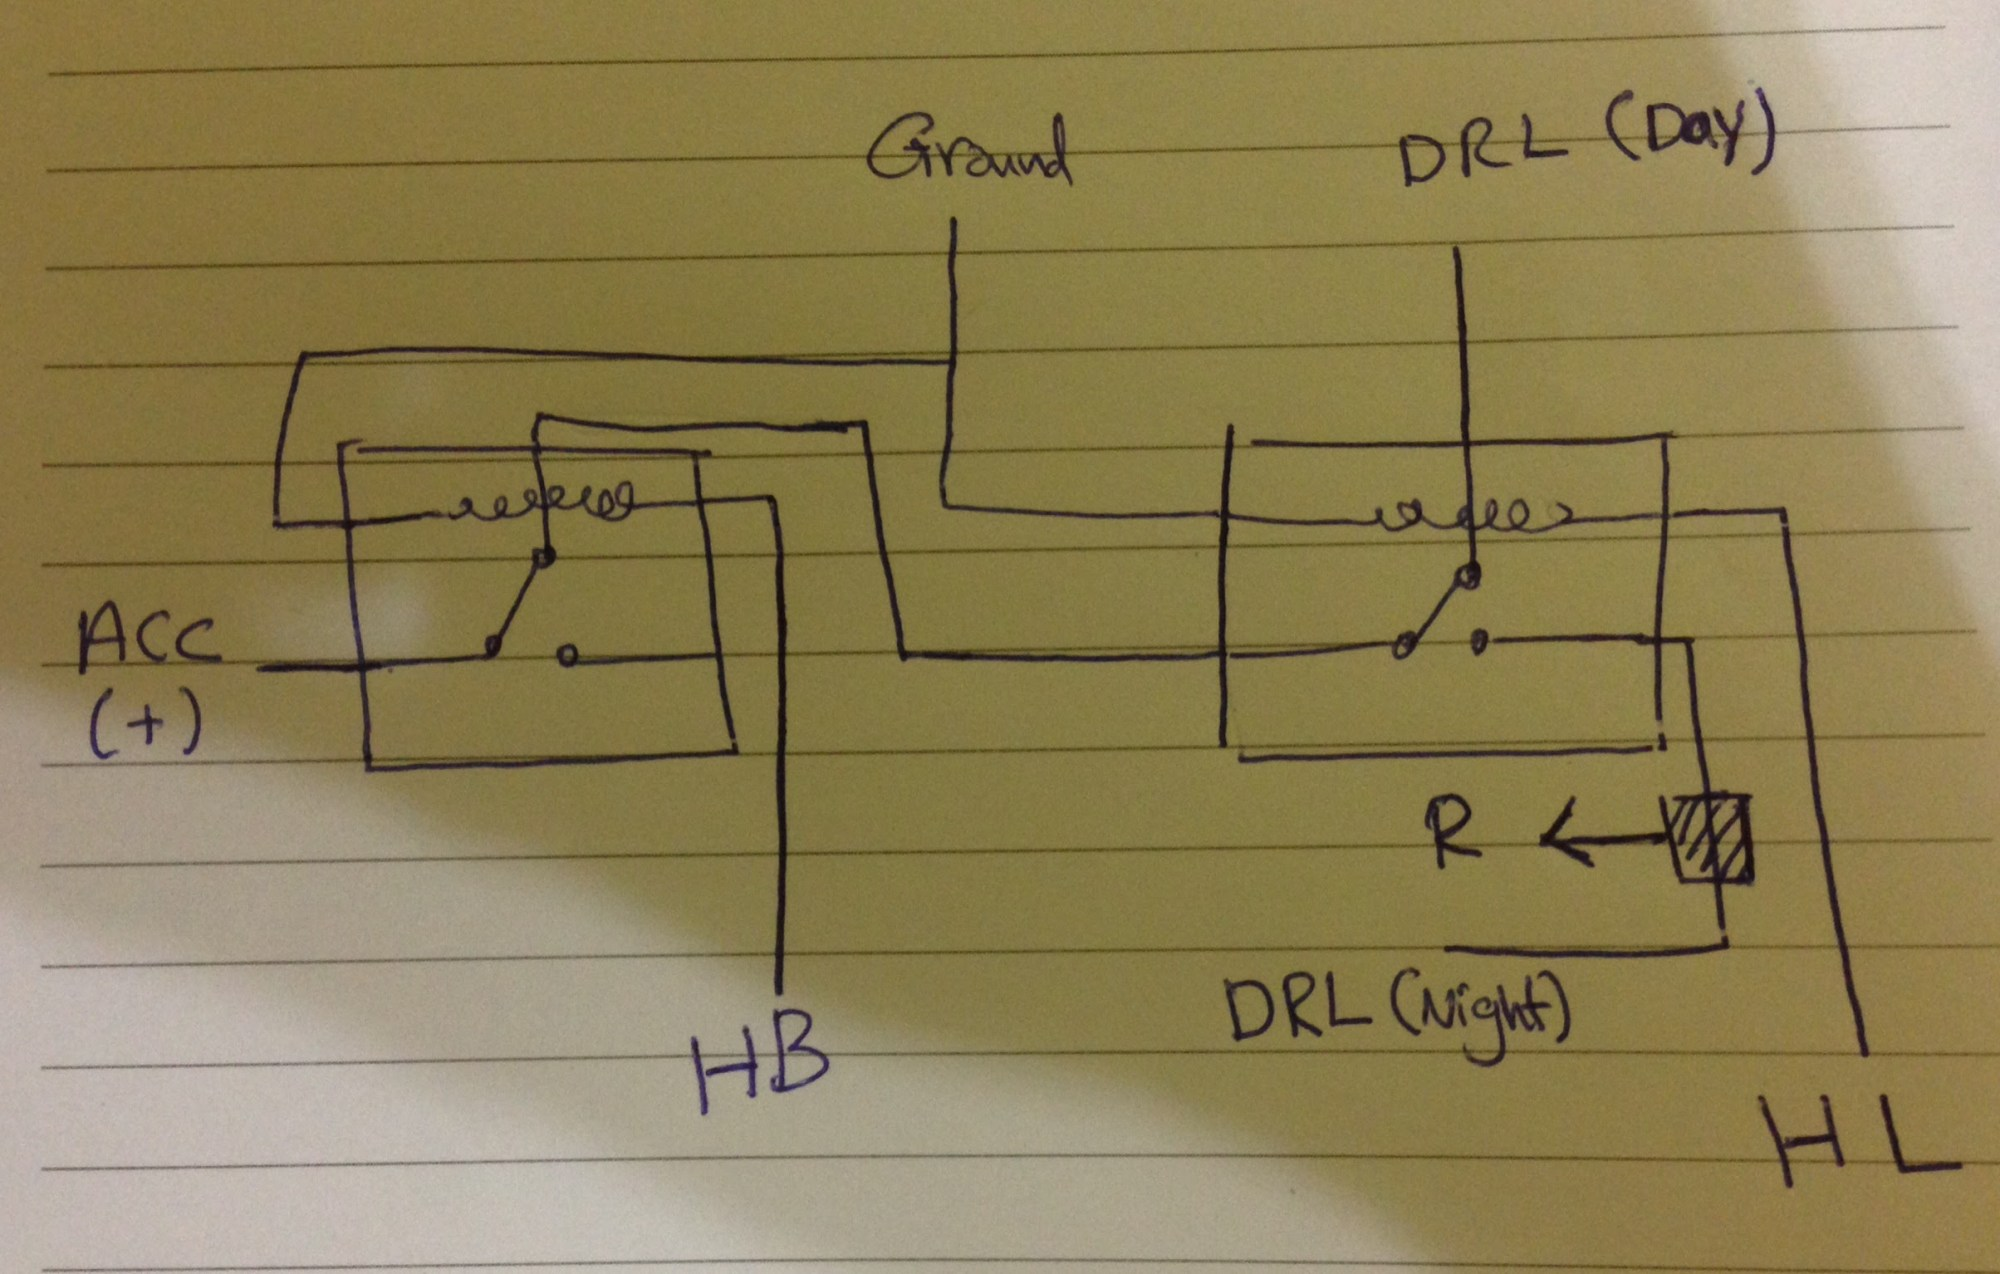 hight resolution of auto running light wiring diagram